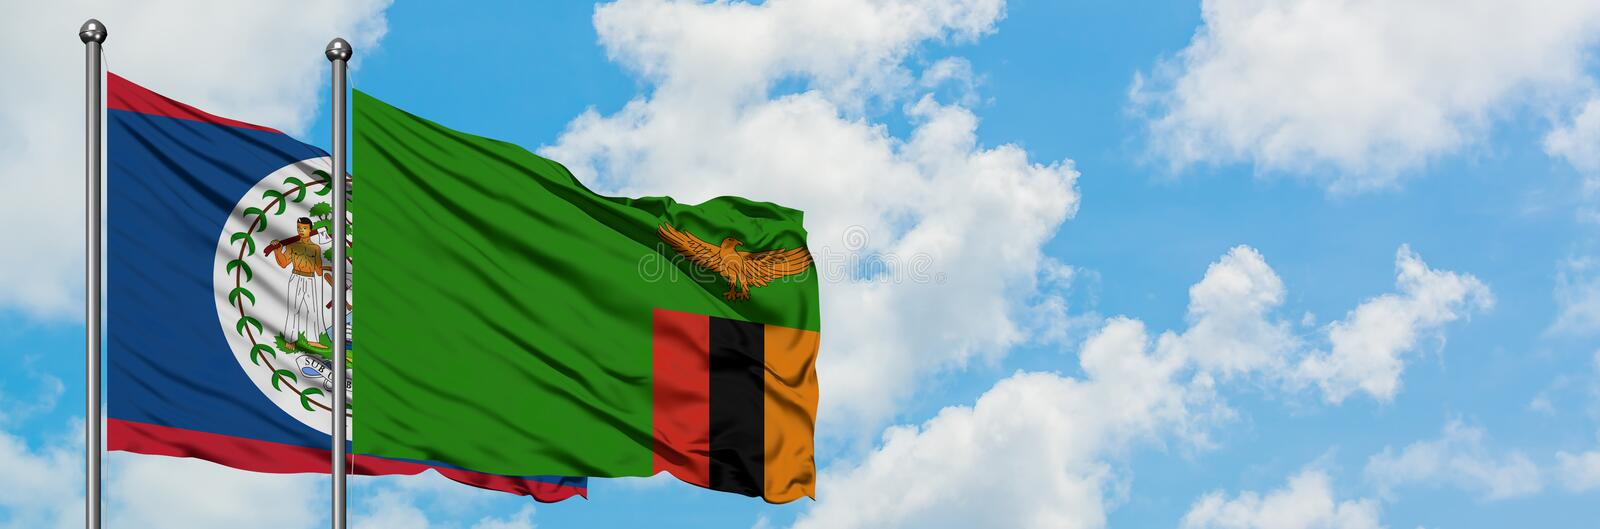 Belize and Zambia flag waving in the wind against white cloudy blue sky together. Diplomacy concept, international relations. Consul, diplomat, ambassador royalty free stock image